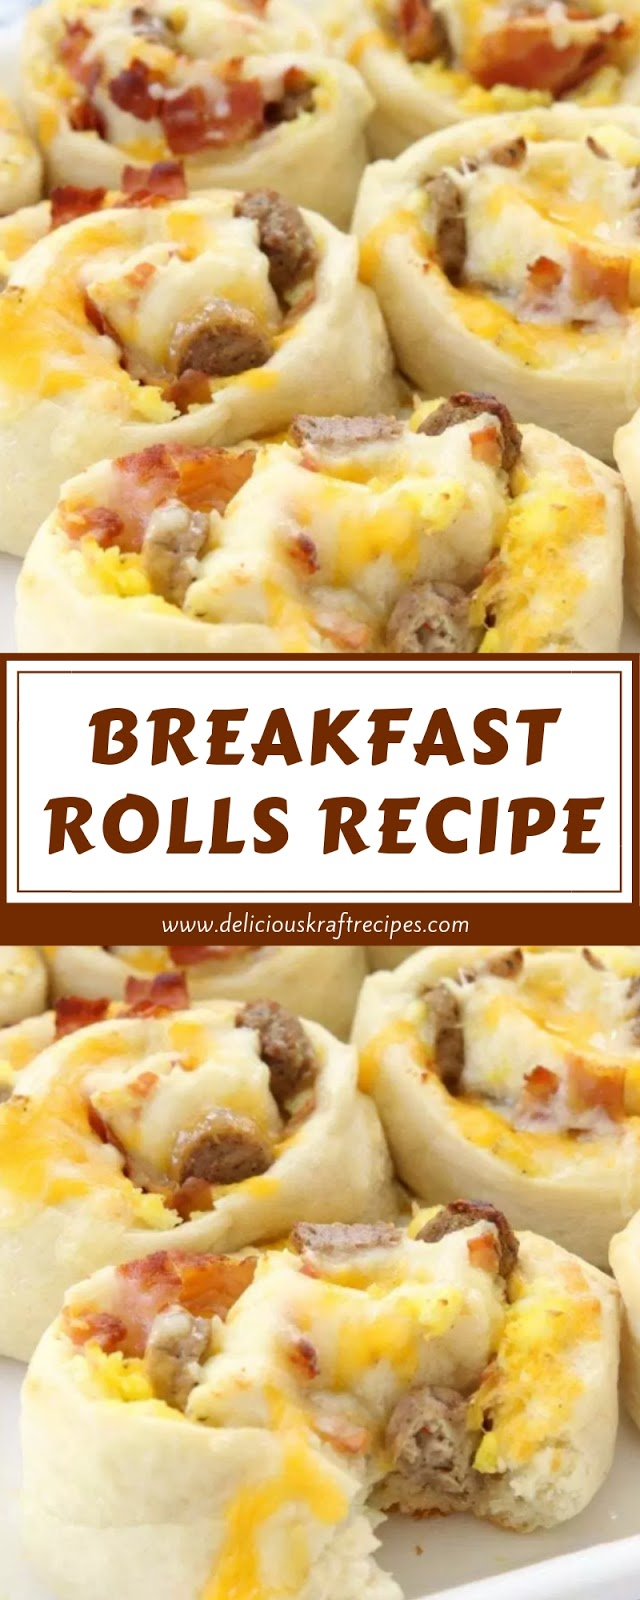 BREAKFAST ROLLS RECIPE